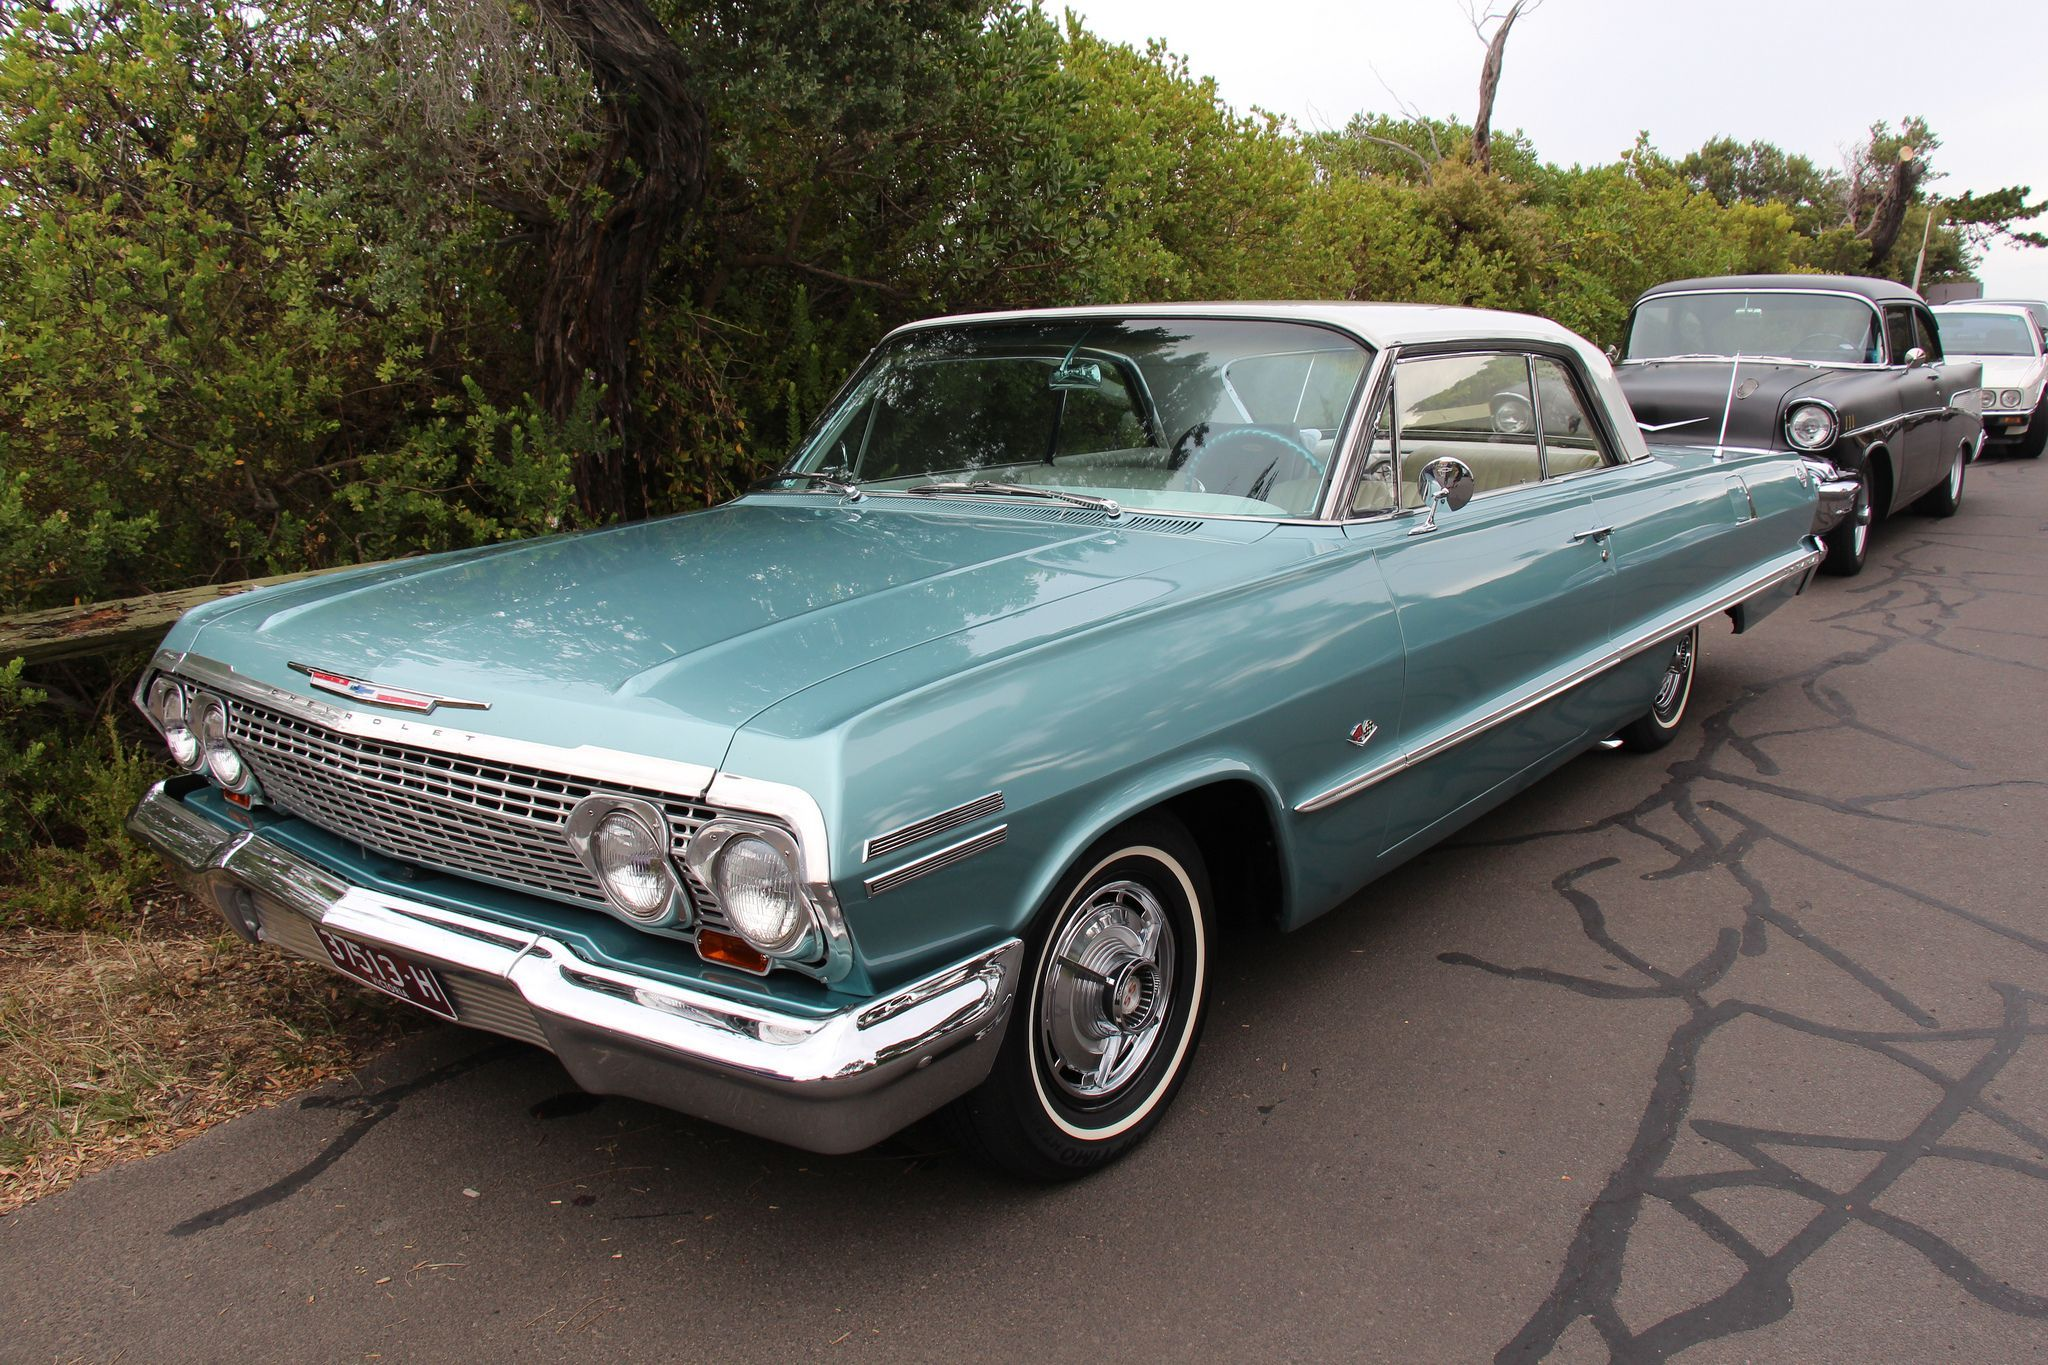 Https Flic Kr P Qkfkro 1963 Chevrolet Impala 2 Door Hardtop Azure Aqua All Sheetmetal Except The Doors Was Changed F Chevrolet Impala Impala Chevrolet